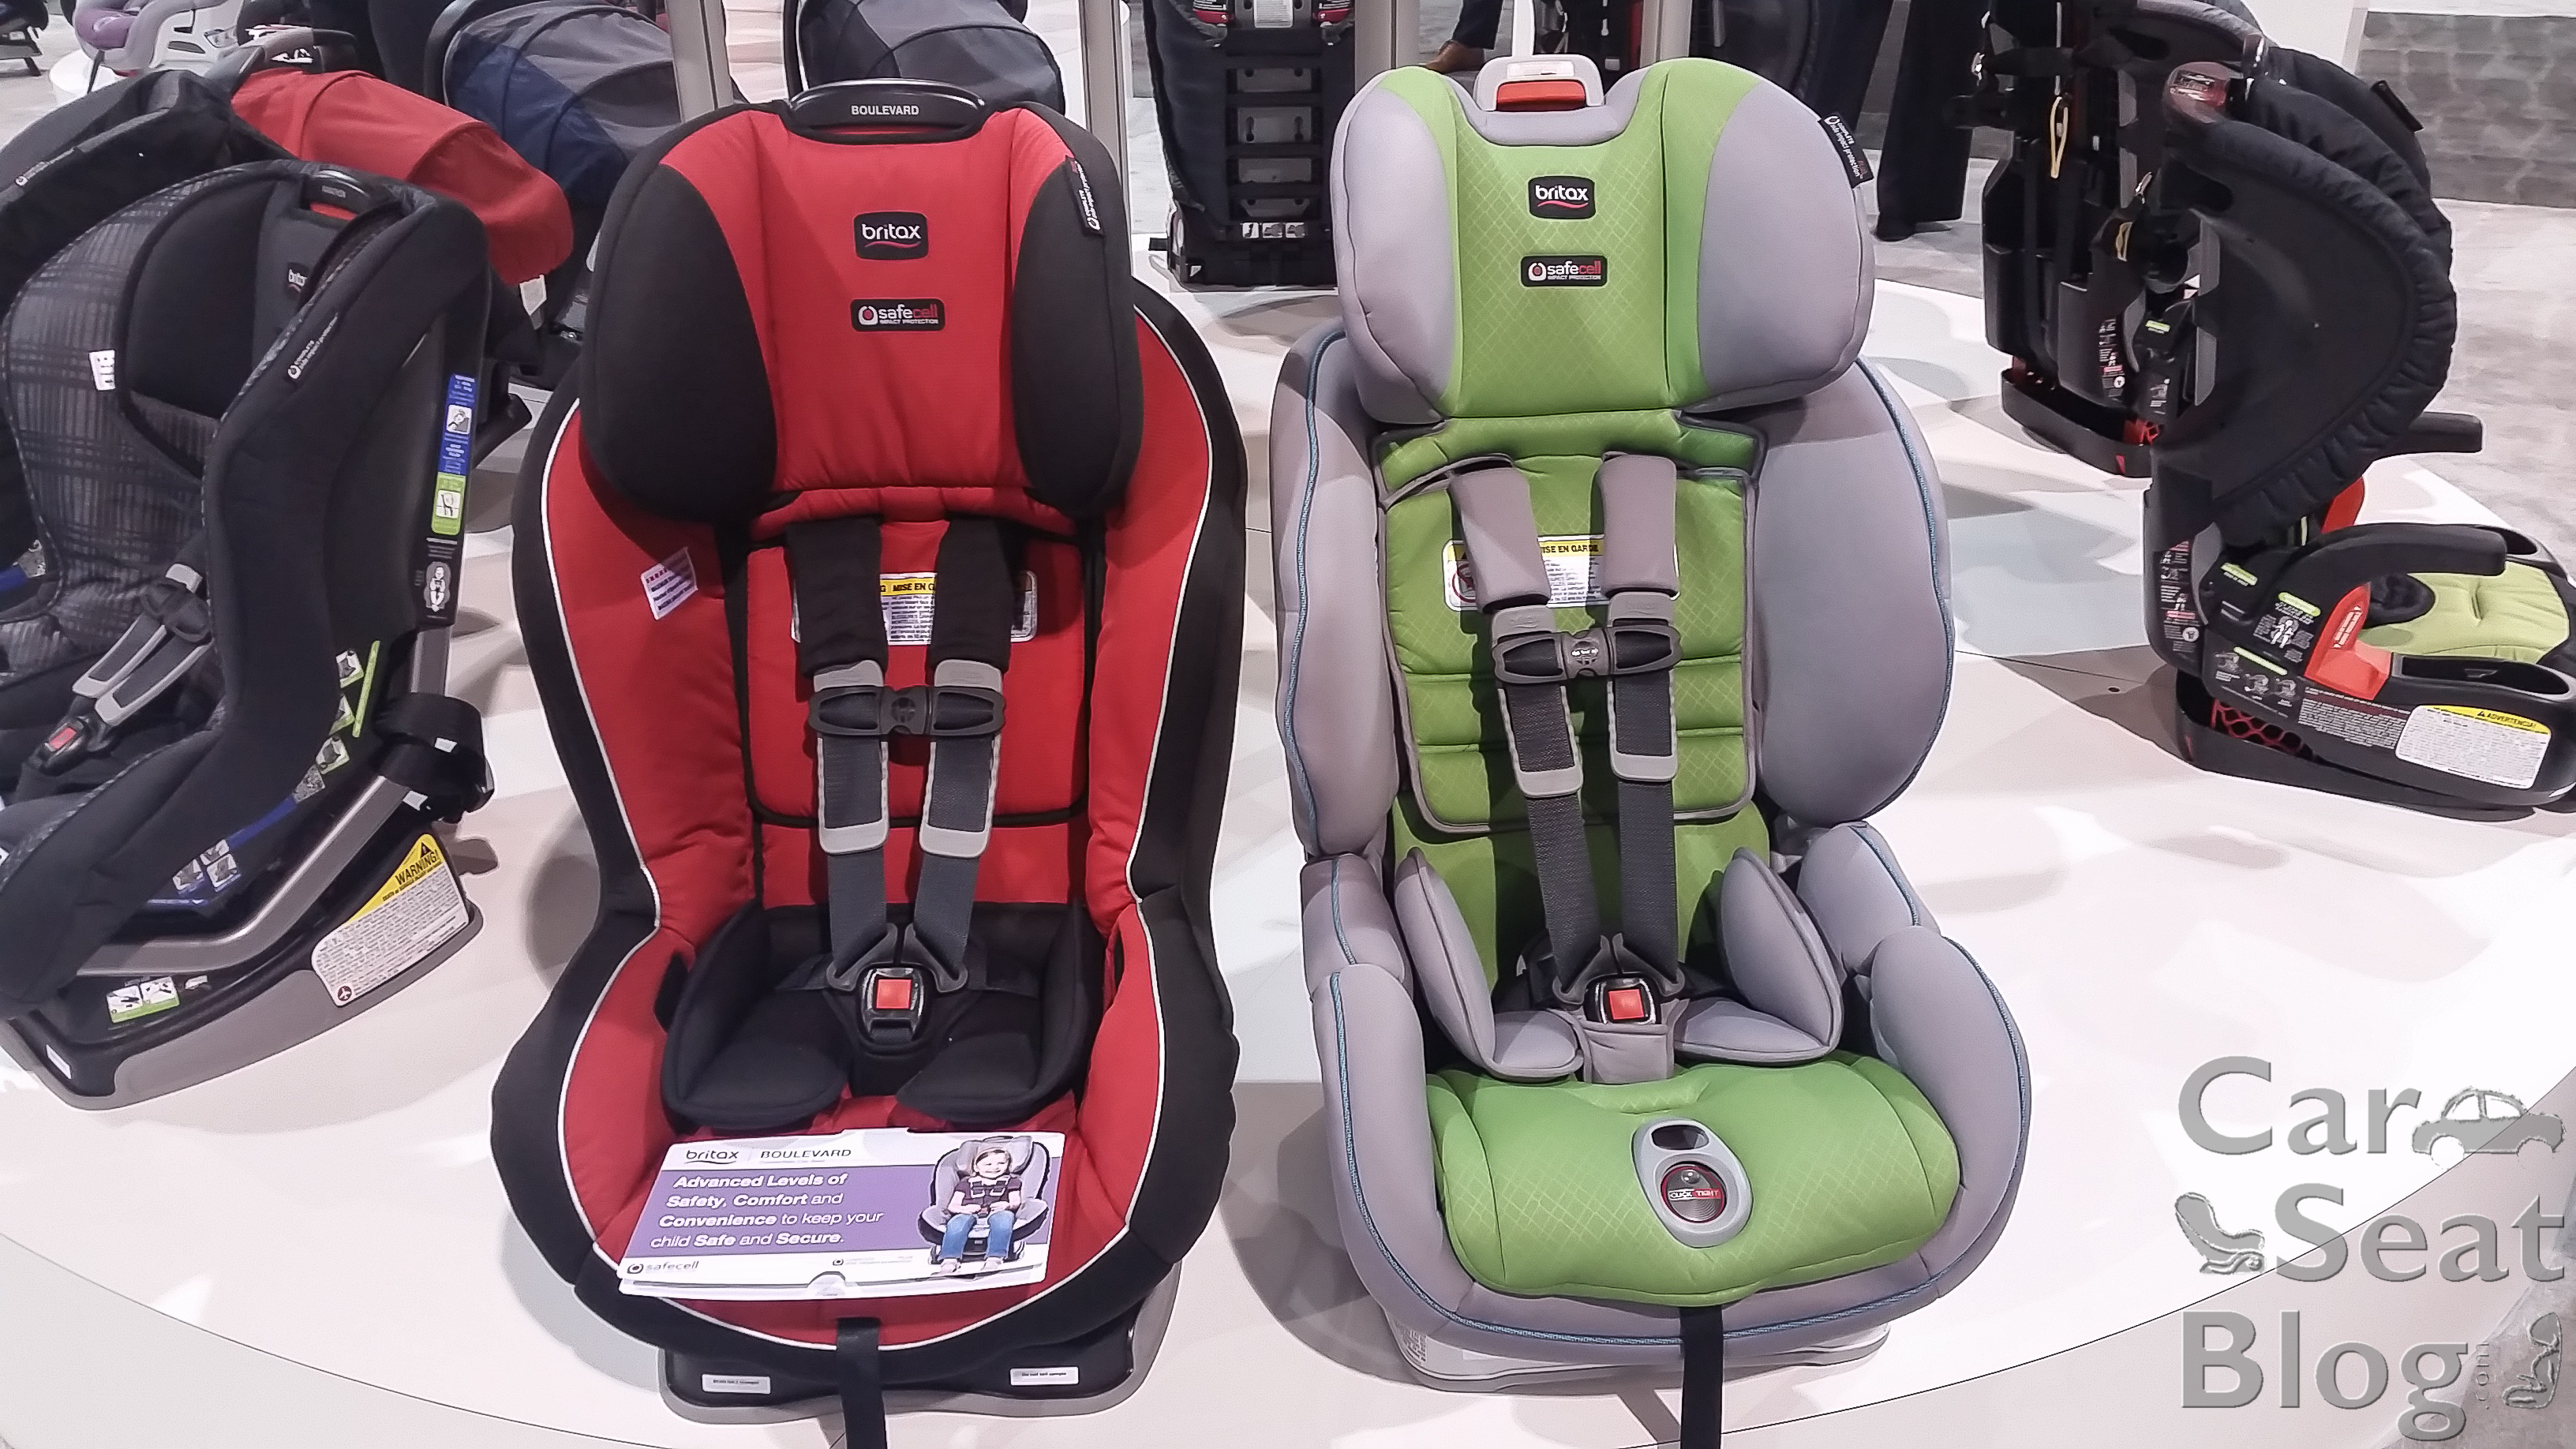 G41 Top Harness Slots Are About 15 Lower Than The ClickTight Seats And Overall Seat Height Is Shorter While 1 Wider